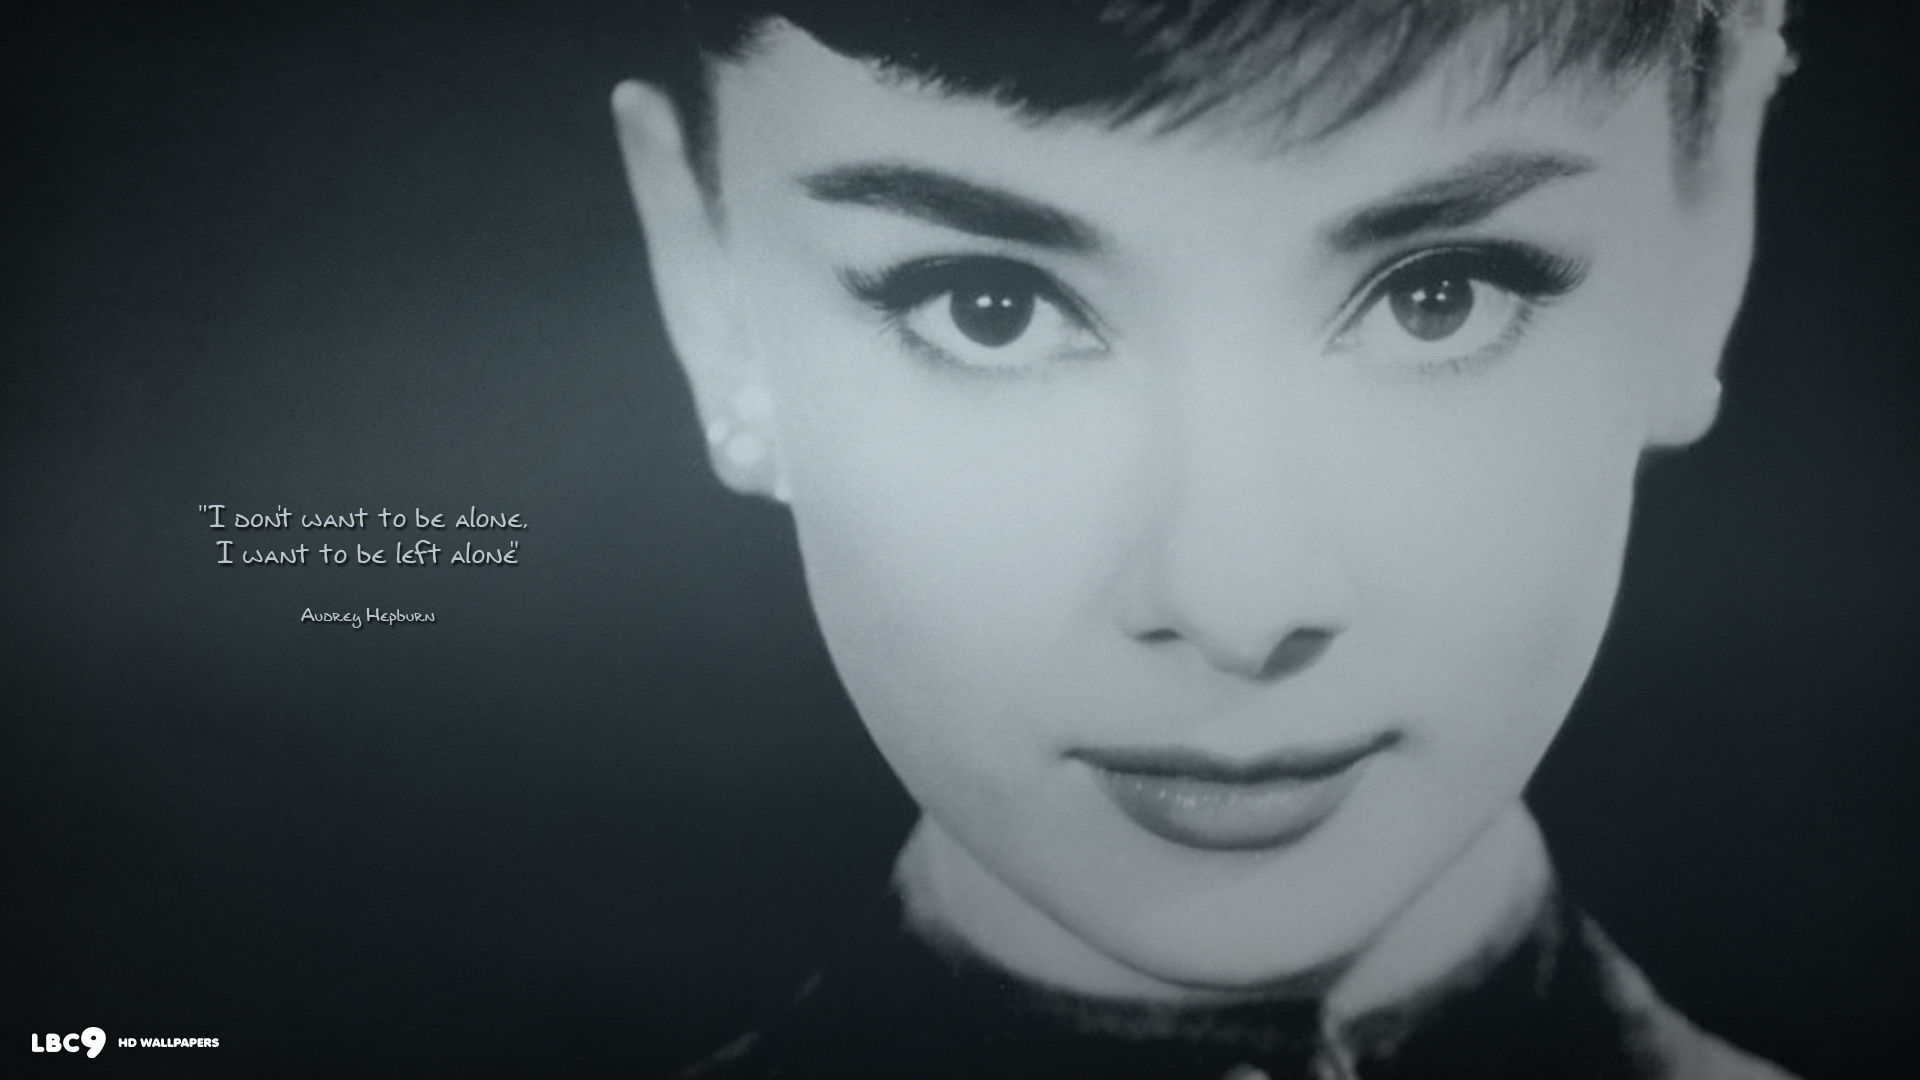 audrey hepburn wallpaper 2350 actresses hd backgrounds 1920x1080